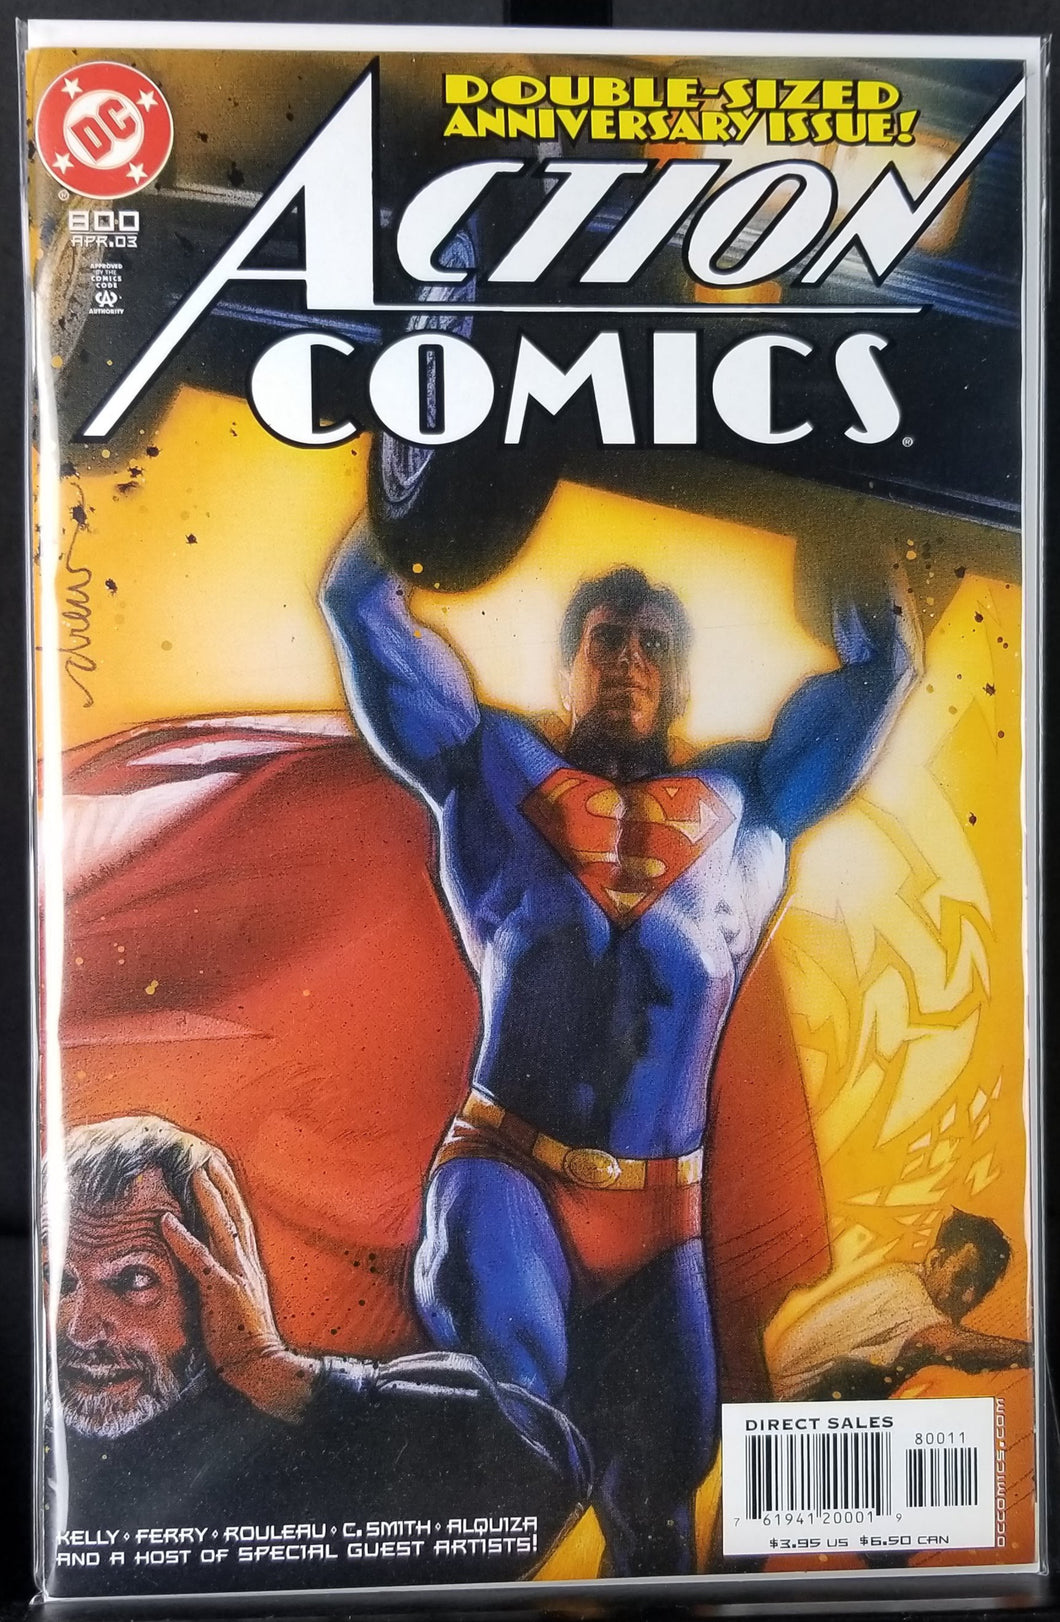 Action Comics #800 Action Comics #1 homage